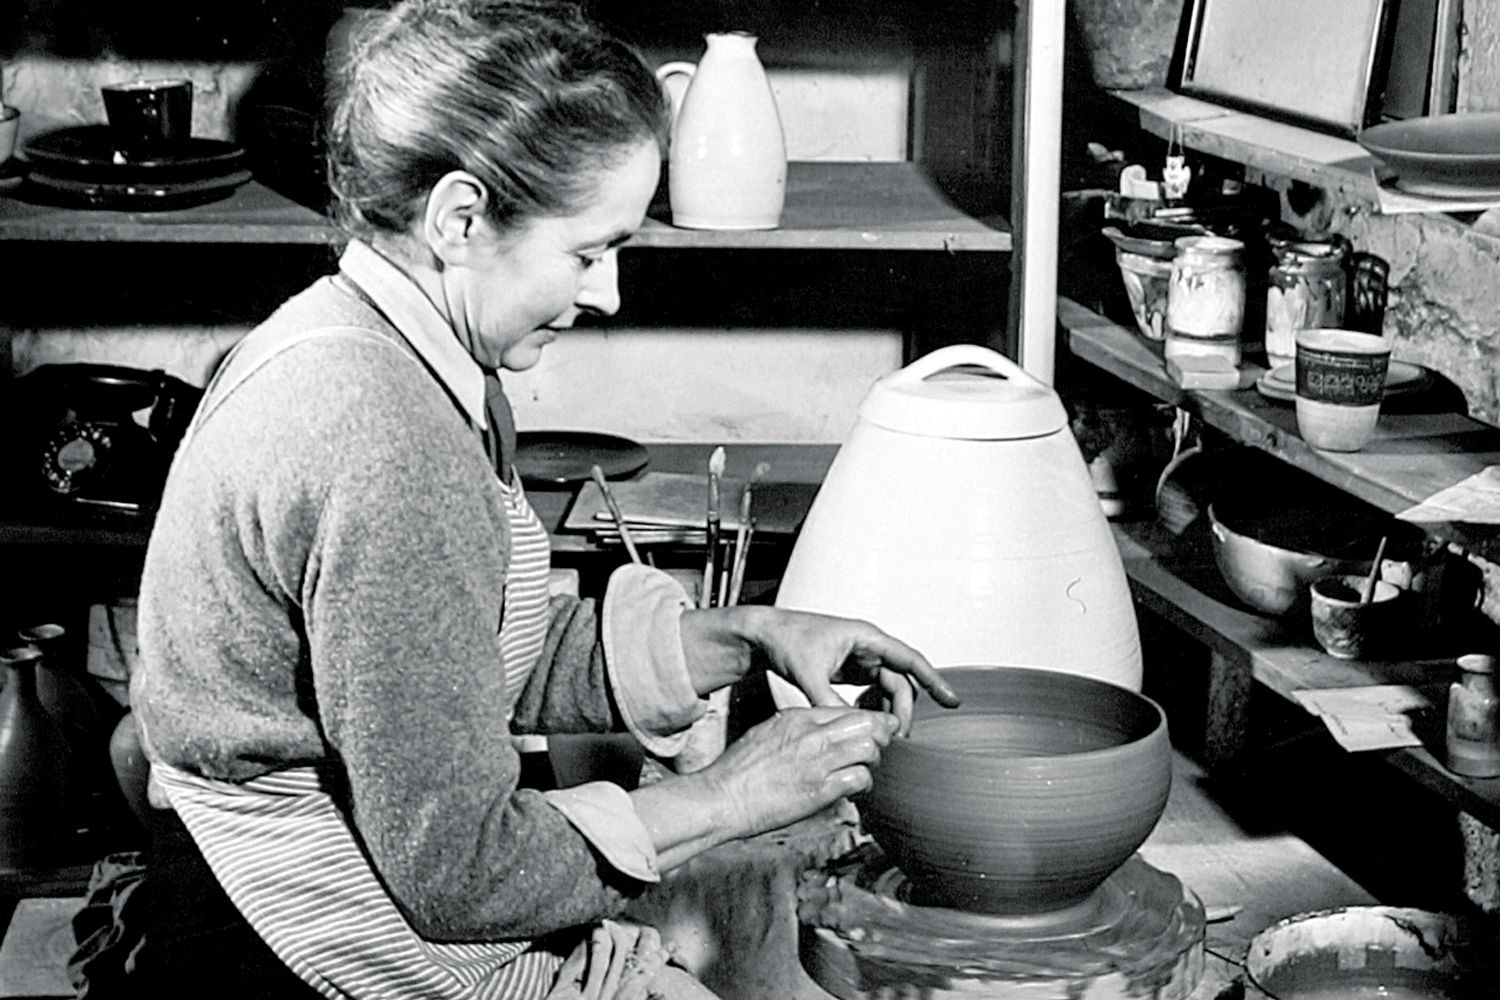 Feature:  Lucie Rie potting on the wheel in her studio at Albion Mews, 1951.  Image kindly provided by the Crafts Study Centre, University for the Creative Arts